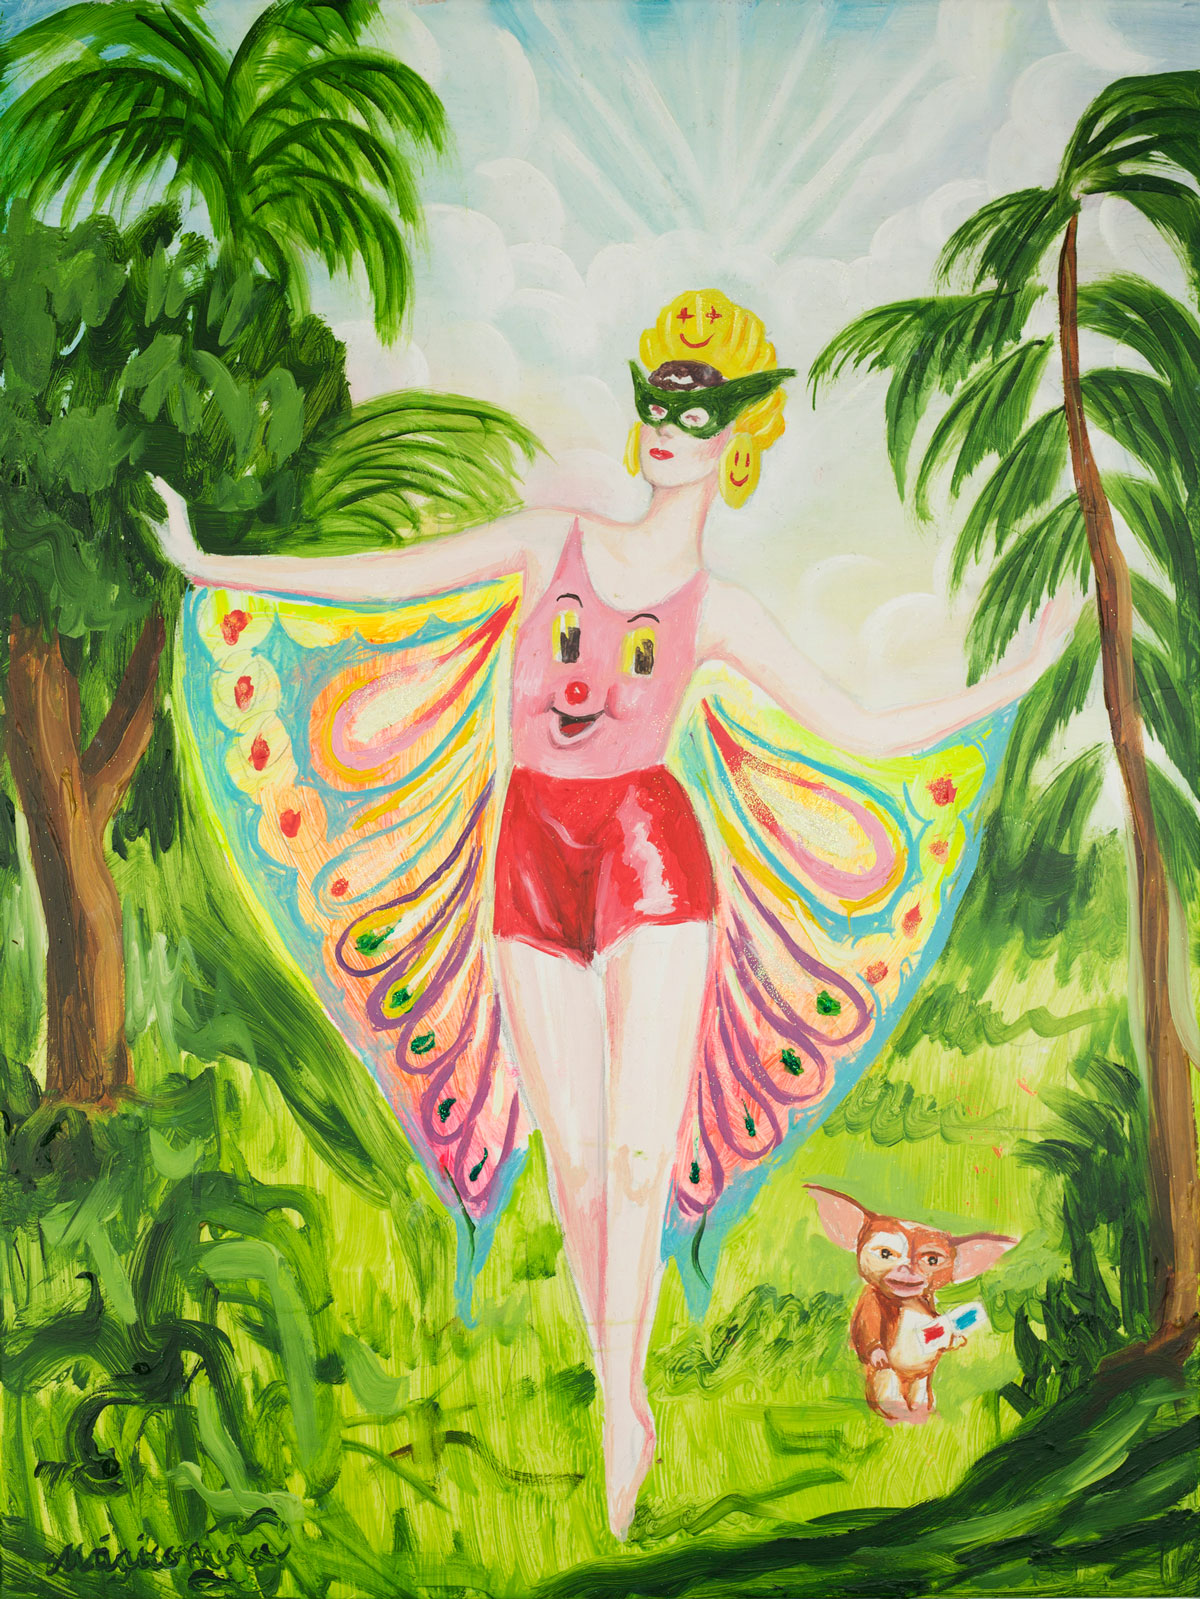 Sergio Mora, Butterfly dancer, 2020, oil on canvas, 61,5x46 cm